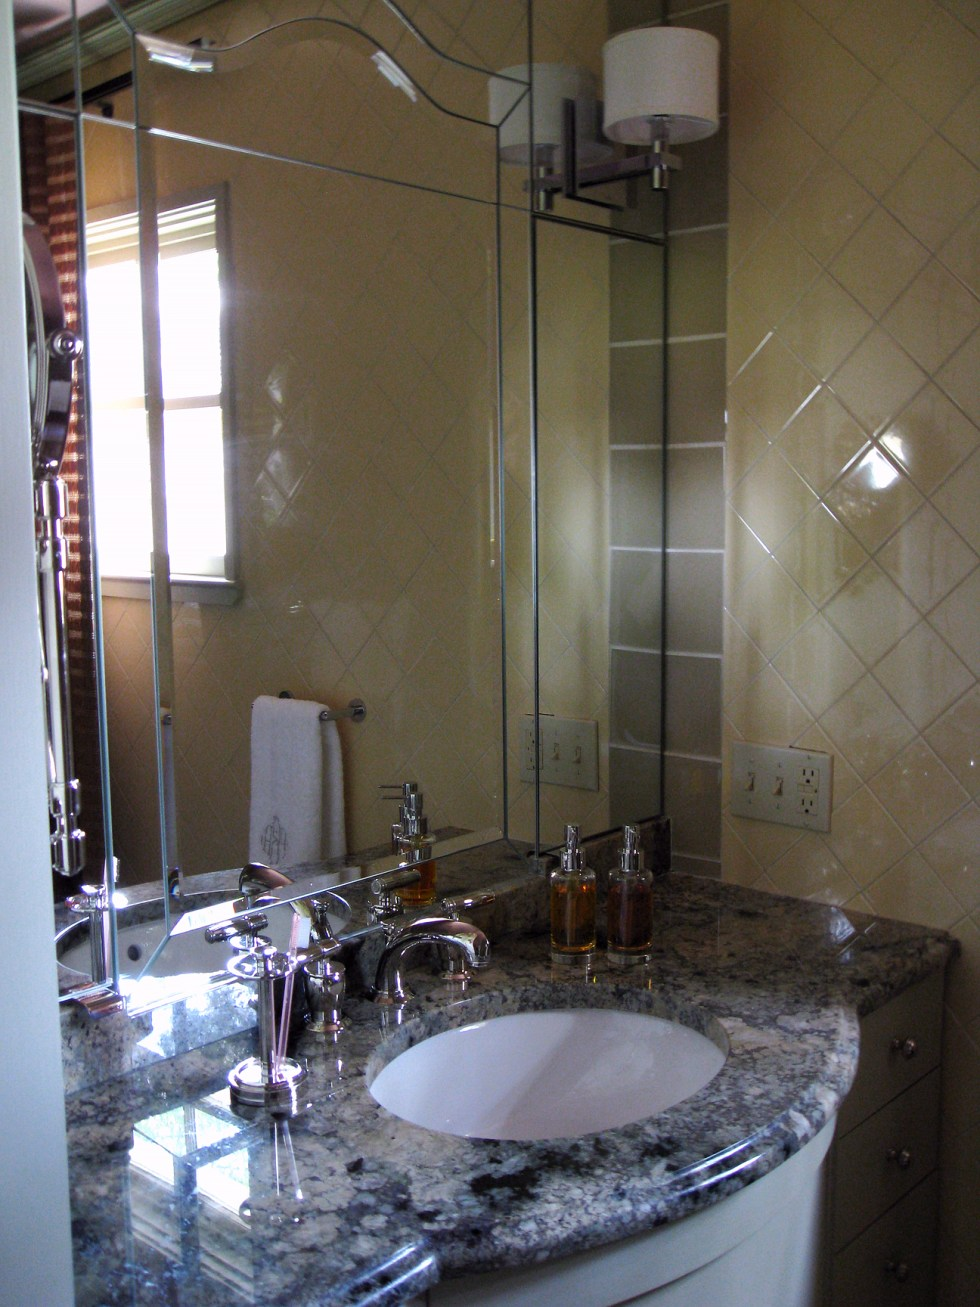 (above) The outcome of all Frances Elkins' influences, resulted in this recessed mirrored niche, combining a shaped vanity with a simplified Queen Anne-style mirror. On either side of the arch portion of the mirror are two panels that open to reveal medicine cabinets. Even though this space is not nearly as sumptuous as in Frances Elkins' designs, my vanity space is very precious to me, and I feel very lucky to have it.